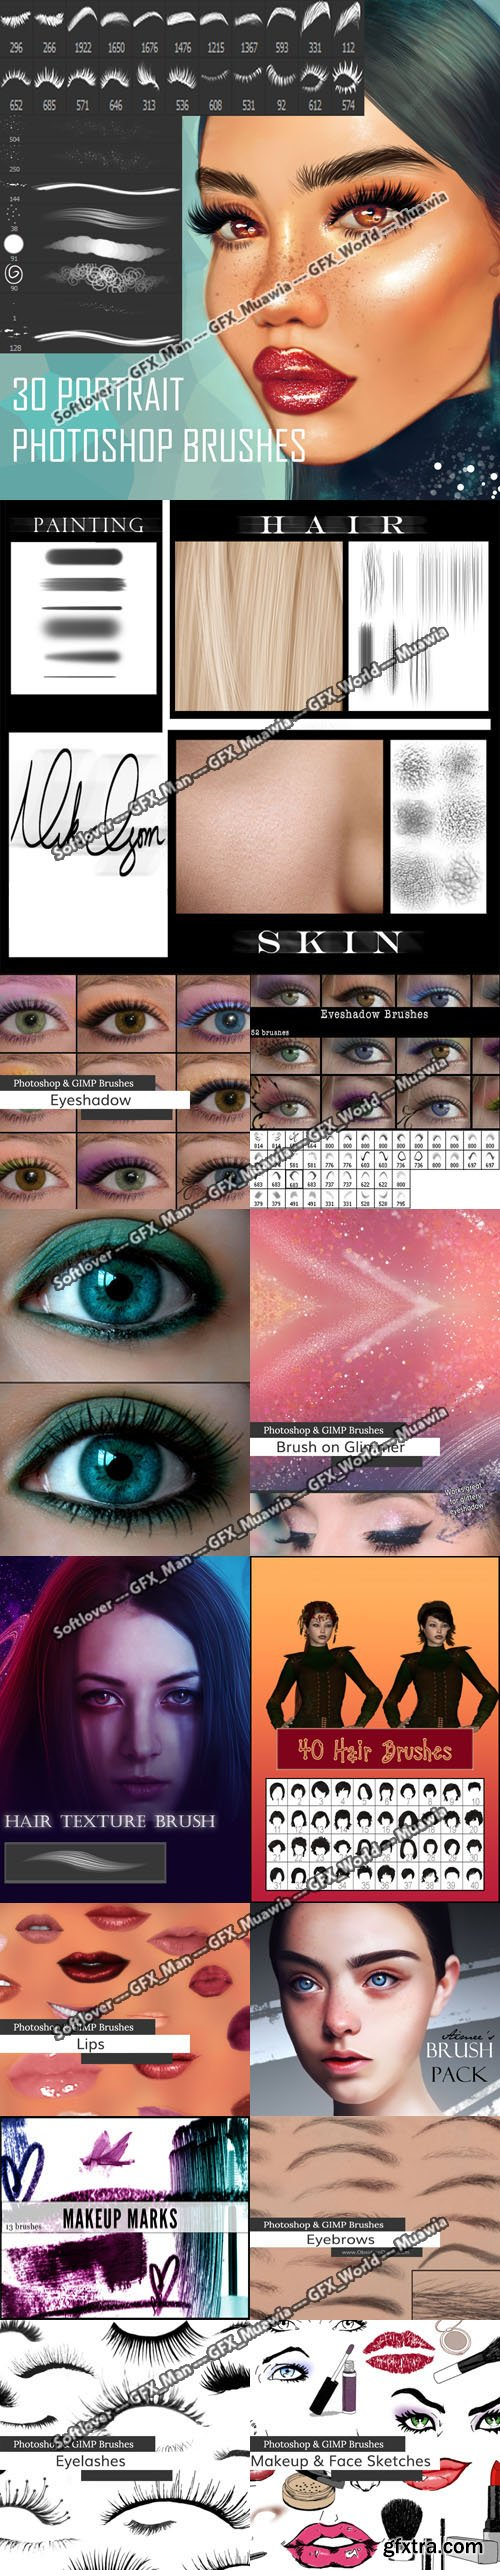 380 Awesome Beauty Photoshop Brush Collection